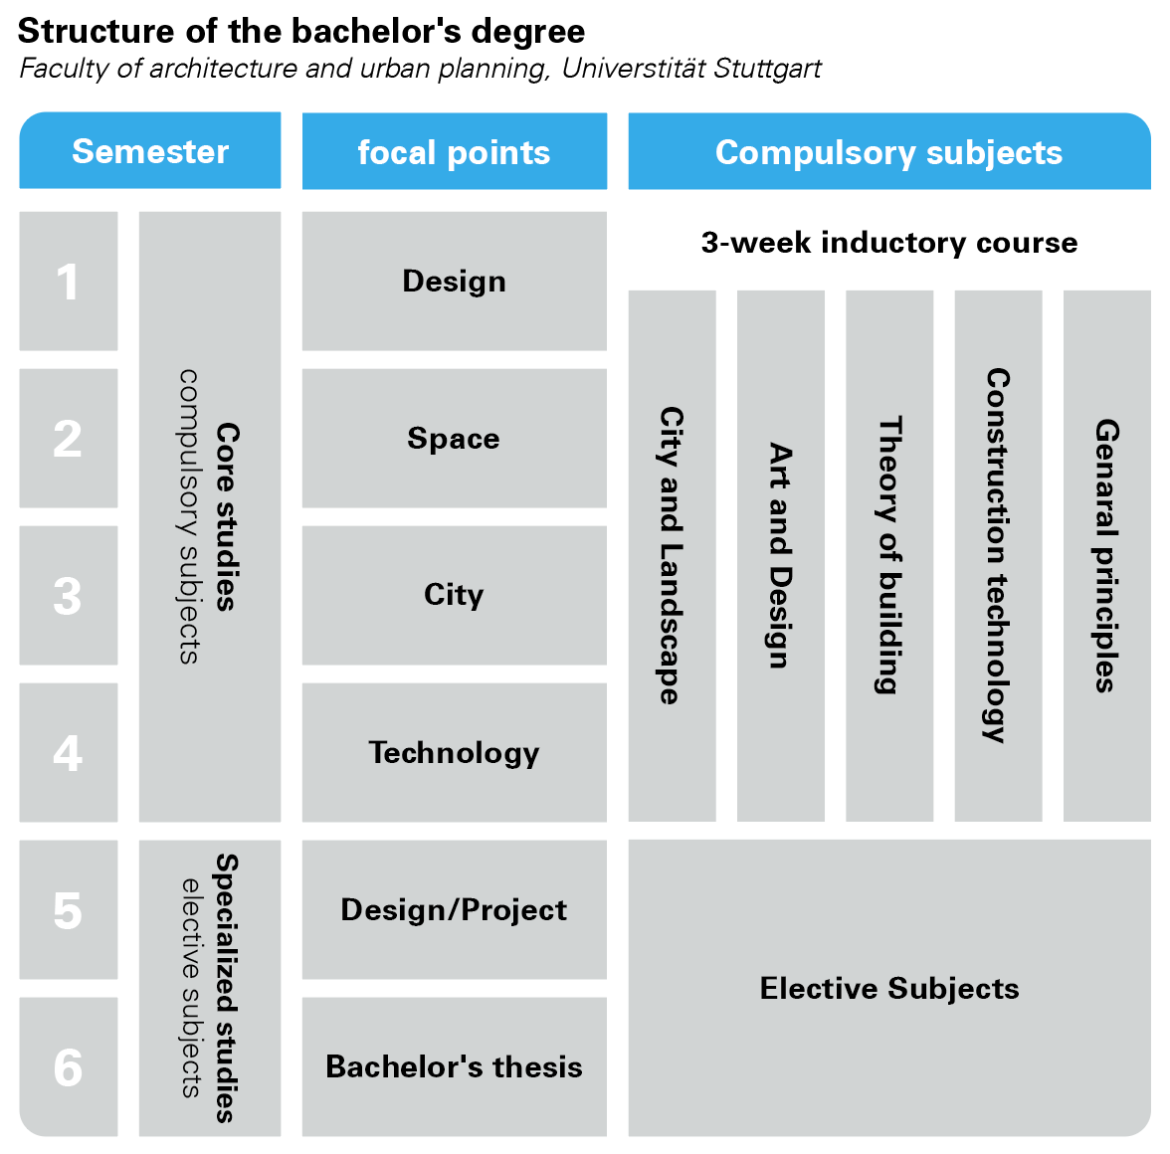 Structure of the bachelor's degree